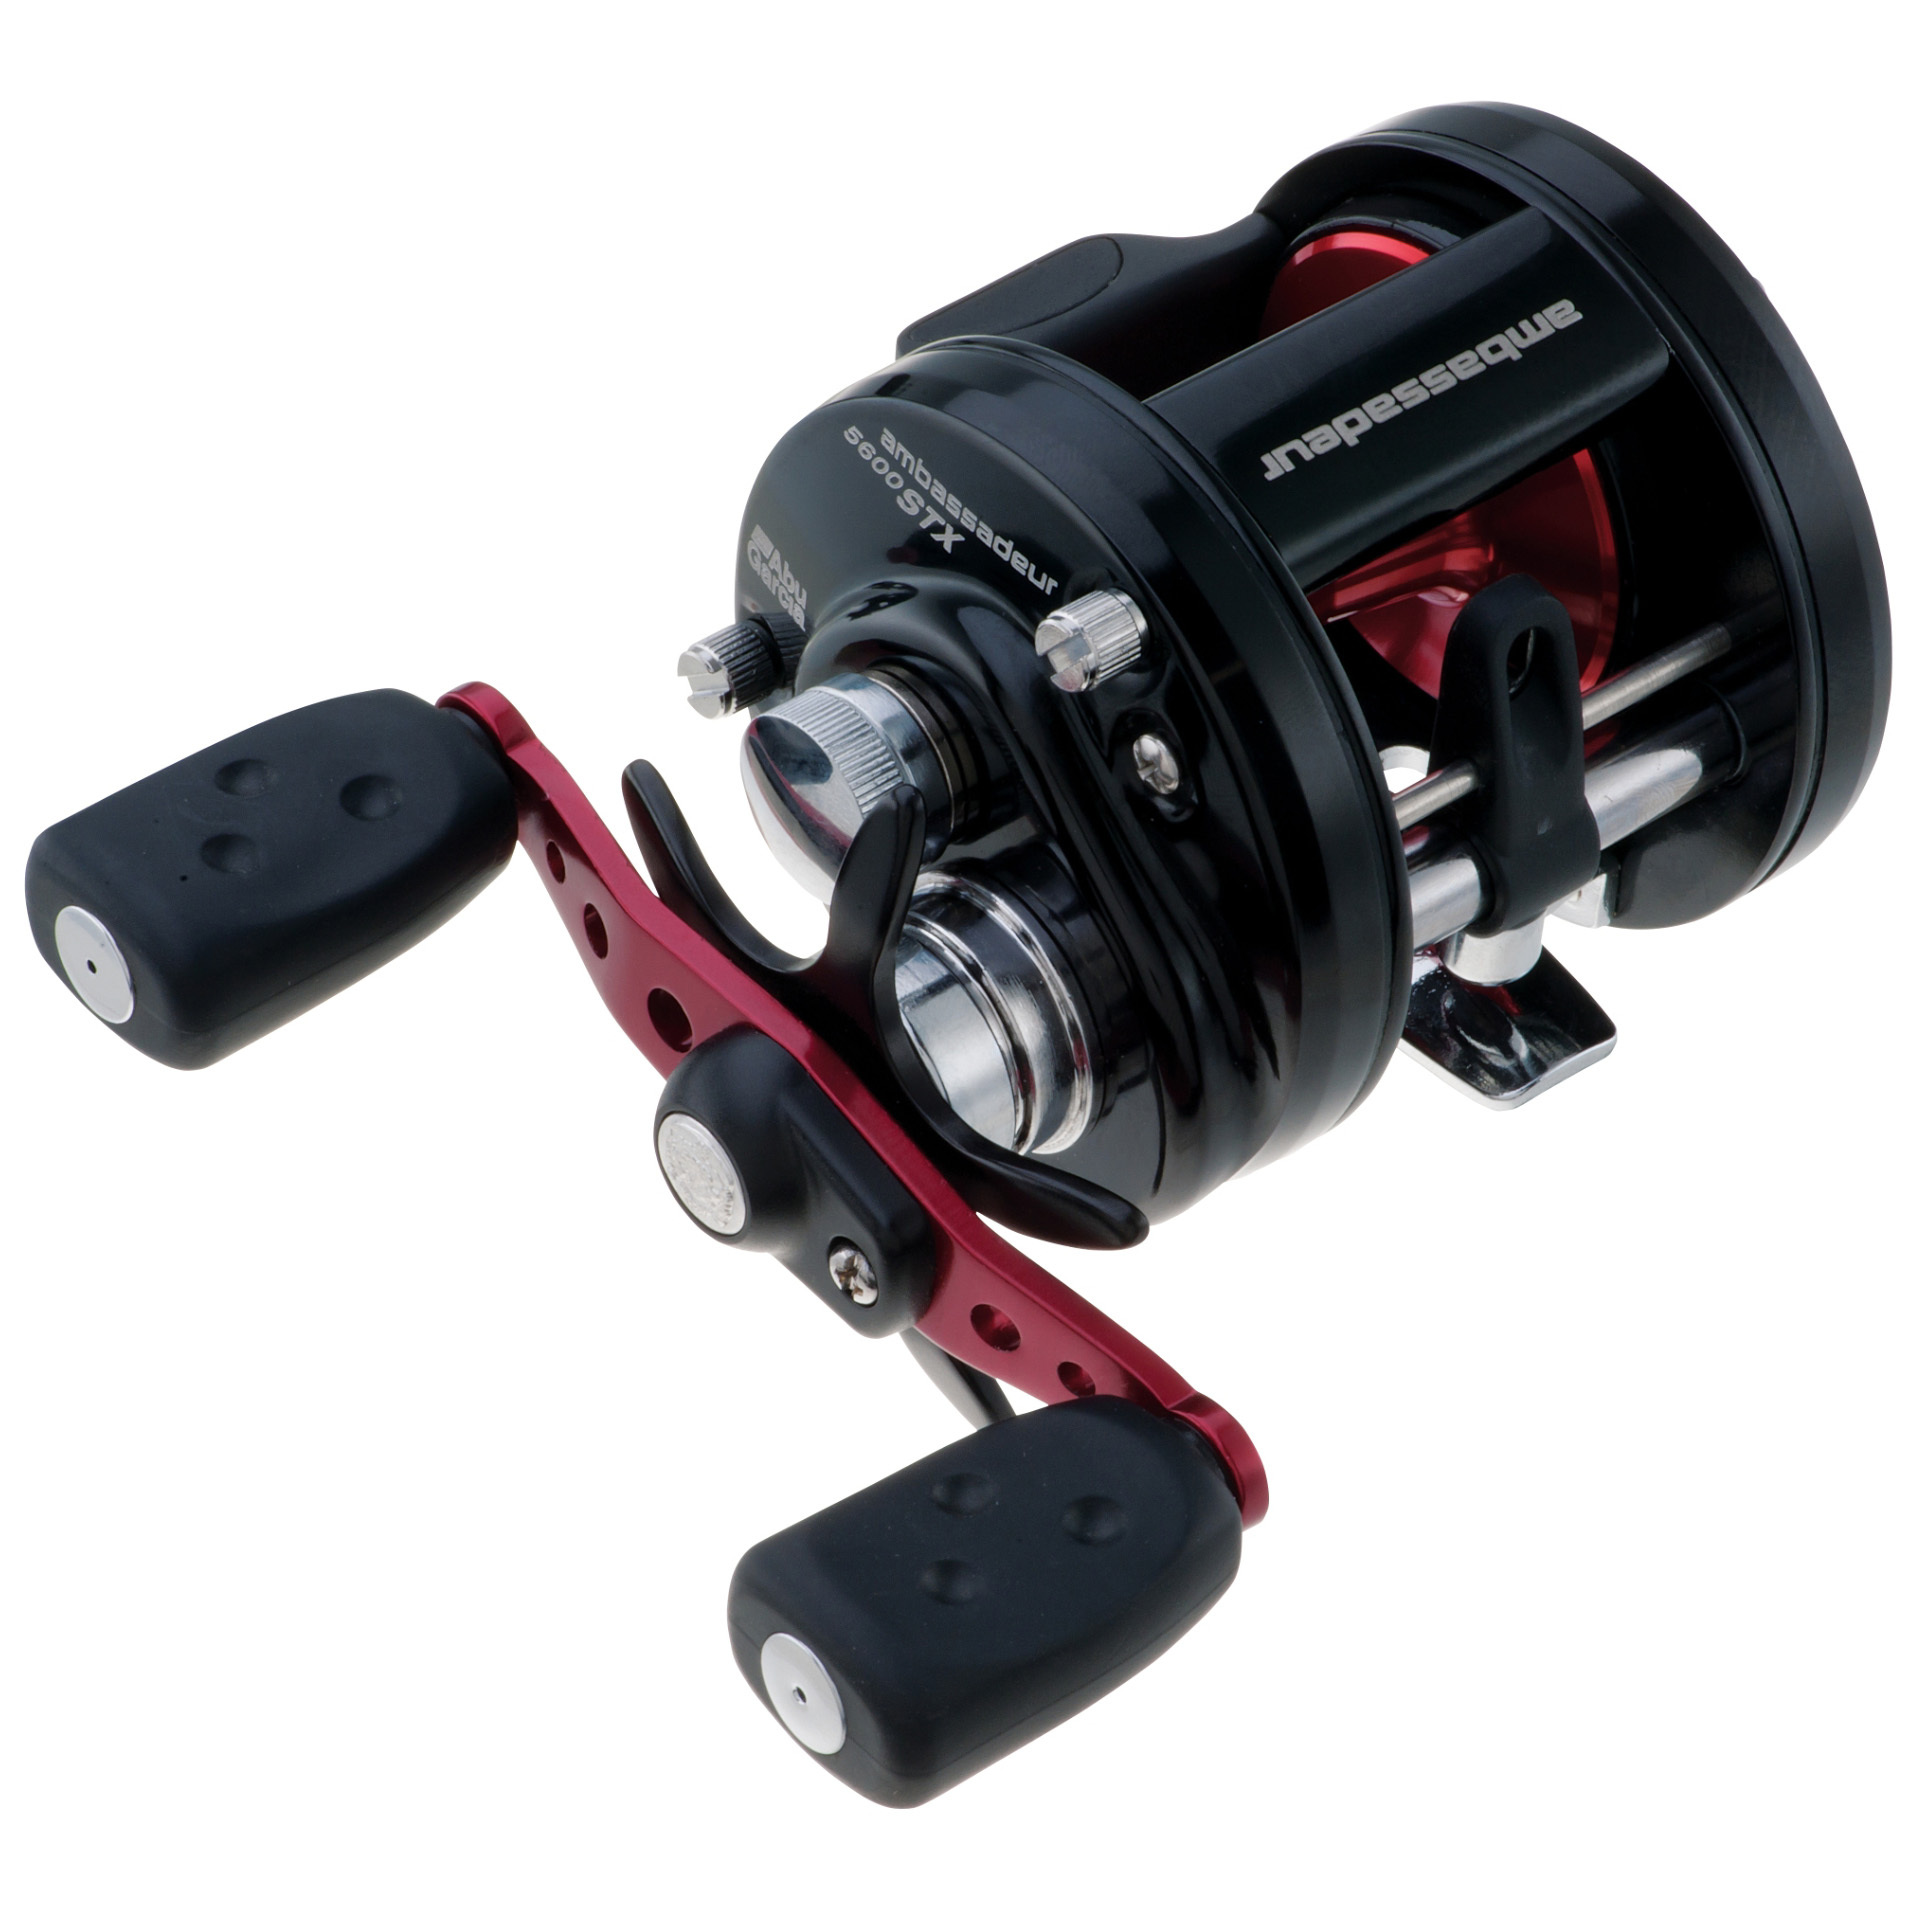 Abu Garcia Ambassadeur STX Round Baitcasting Reel. Exceptional performance for the round reel enthusiast. If you know the Ambassadeur series of reels, you know they represent quality, dependability and value. Dig a little deeper, and you'll find even more good stuff... like a 6-pin brake system that lets you dial in any bait or weather for perfect casts. Or the compact bent handle and star drag that make it both comfortable and powerful. Or... well, you get the picture.Finer points:4 stainless steel ball bearings + 1 roller bearing provides smooth operation Multi-disc drag system gives smooth drag performance 6-pin centrifugal brake gives consistent brake pressure throughout the cast Synchronized level wind system improves line lay and castability Compact bent handle and star provide a more ergonomic design 5.9:1 gear ratio 12 lbs. max. drag.AMBSTX-5600:Line capacity: 14 lb. / 230 yds. Weighs 10 3/4 ozs.AMBSTX-6600:Line capacity: 17 lb. / 255 yds. Weighs 11 1/2 ozs.State Model, as available in the Shopping Cart. - $99.95